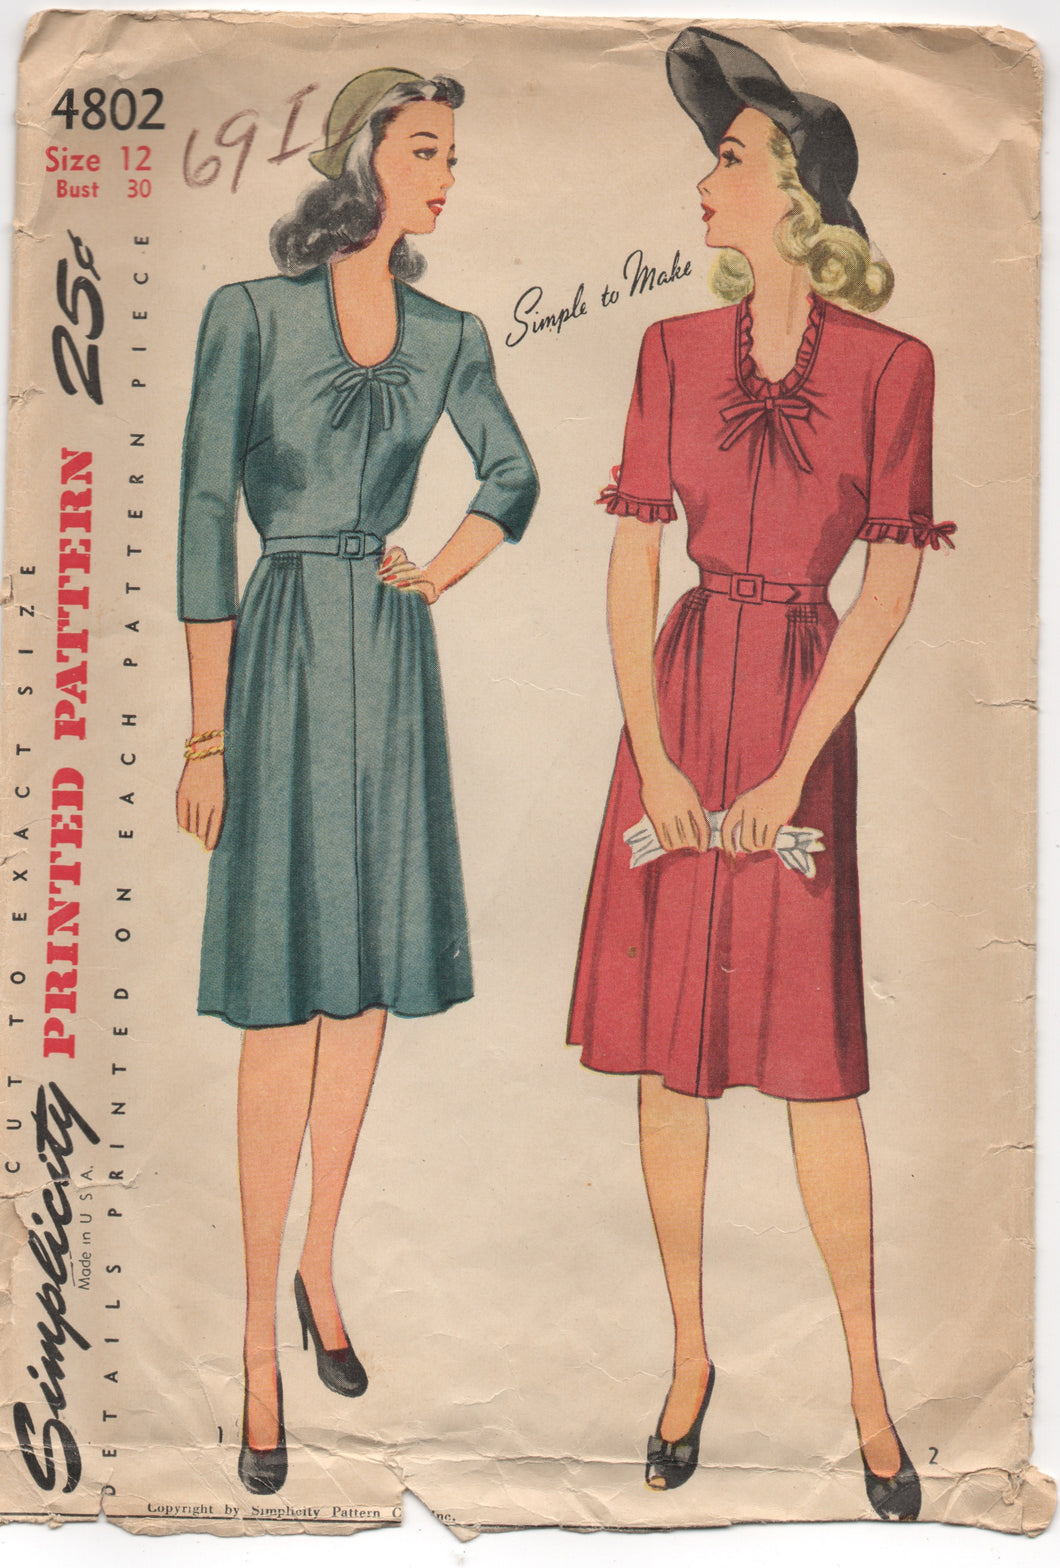 1940's Simplicity One Piece Day Dress with Scoop Neckline - Bust 30